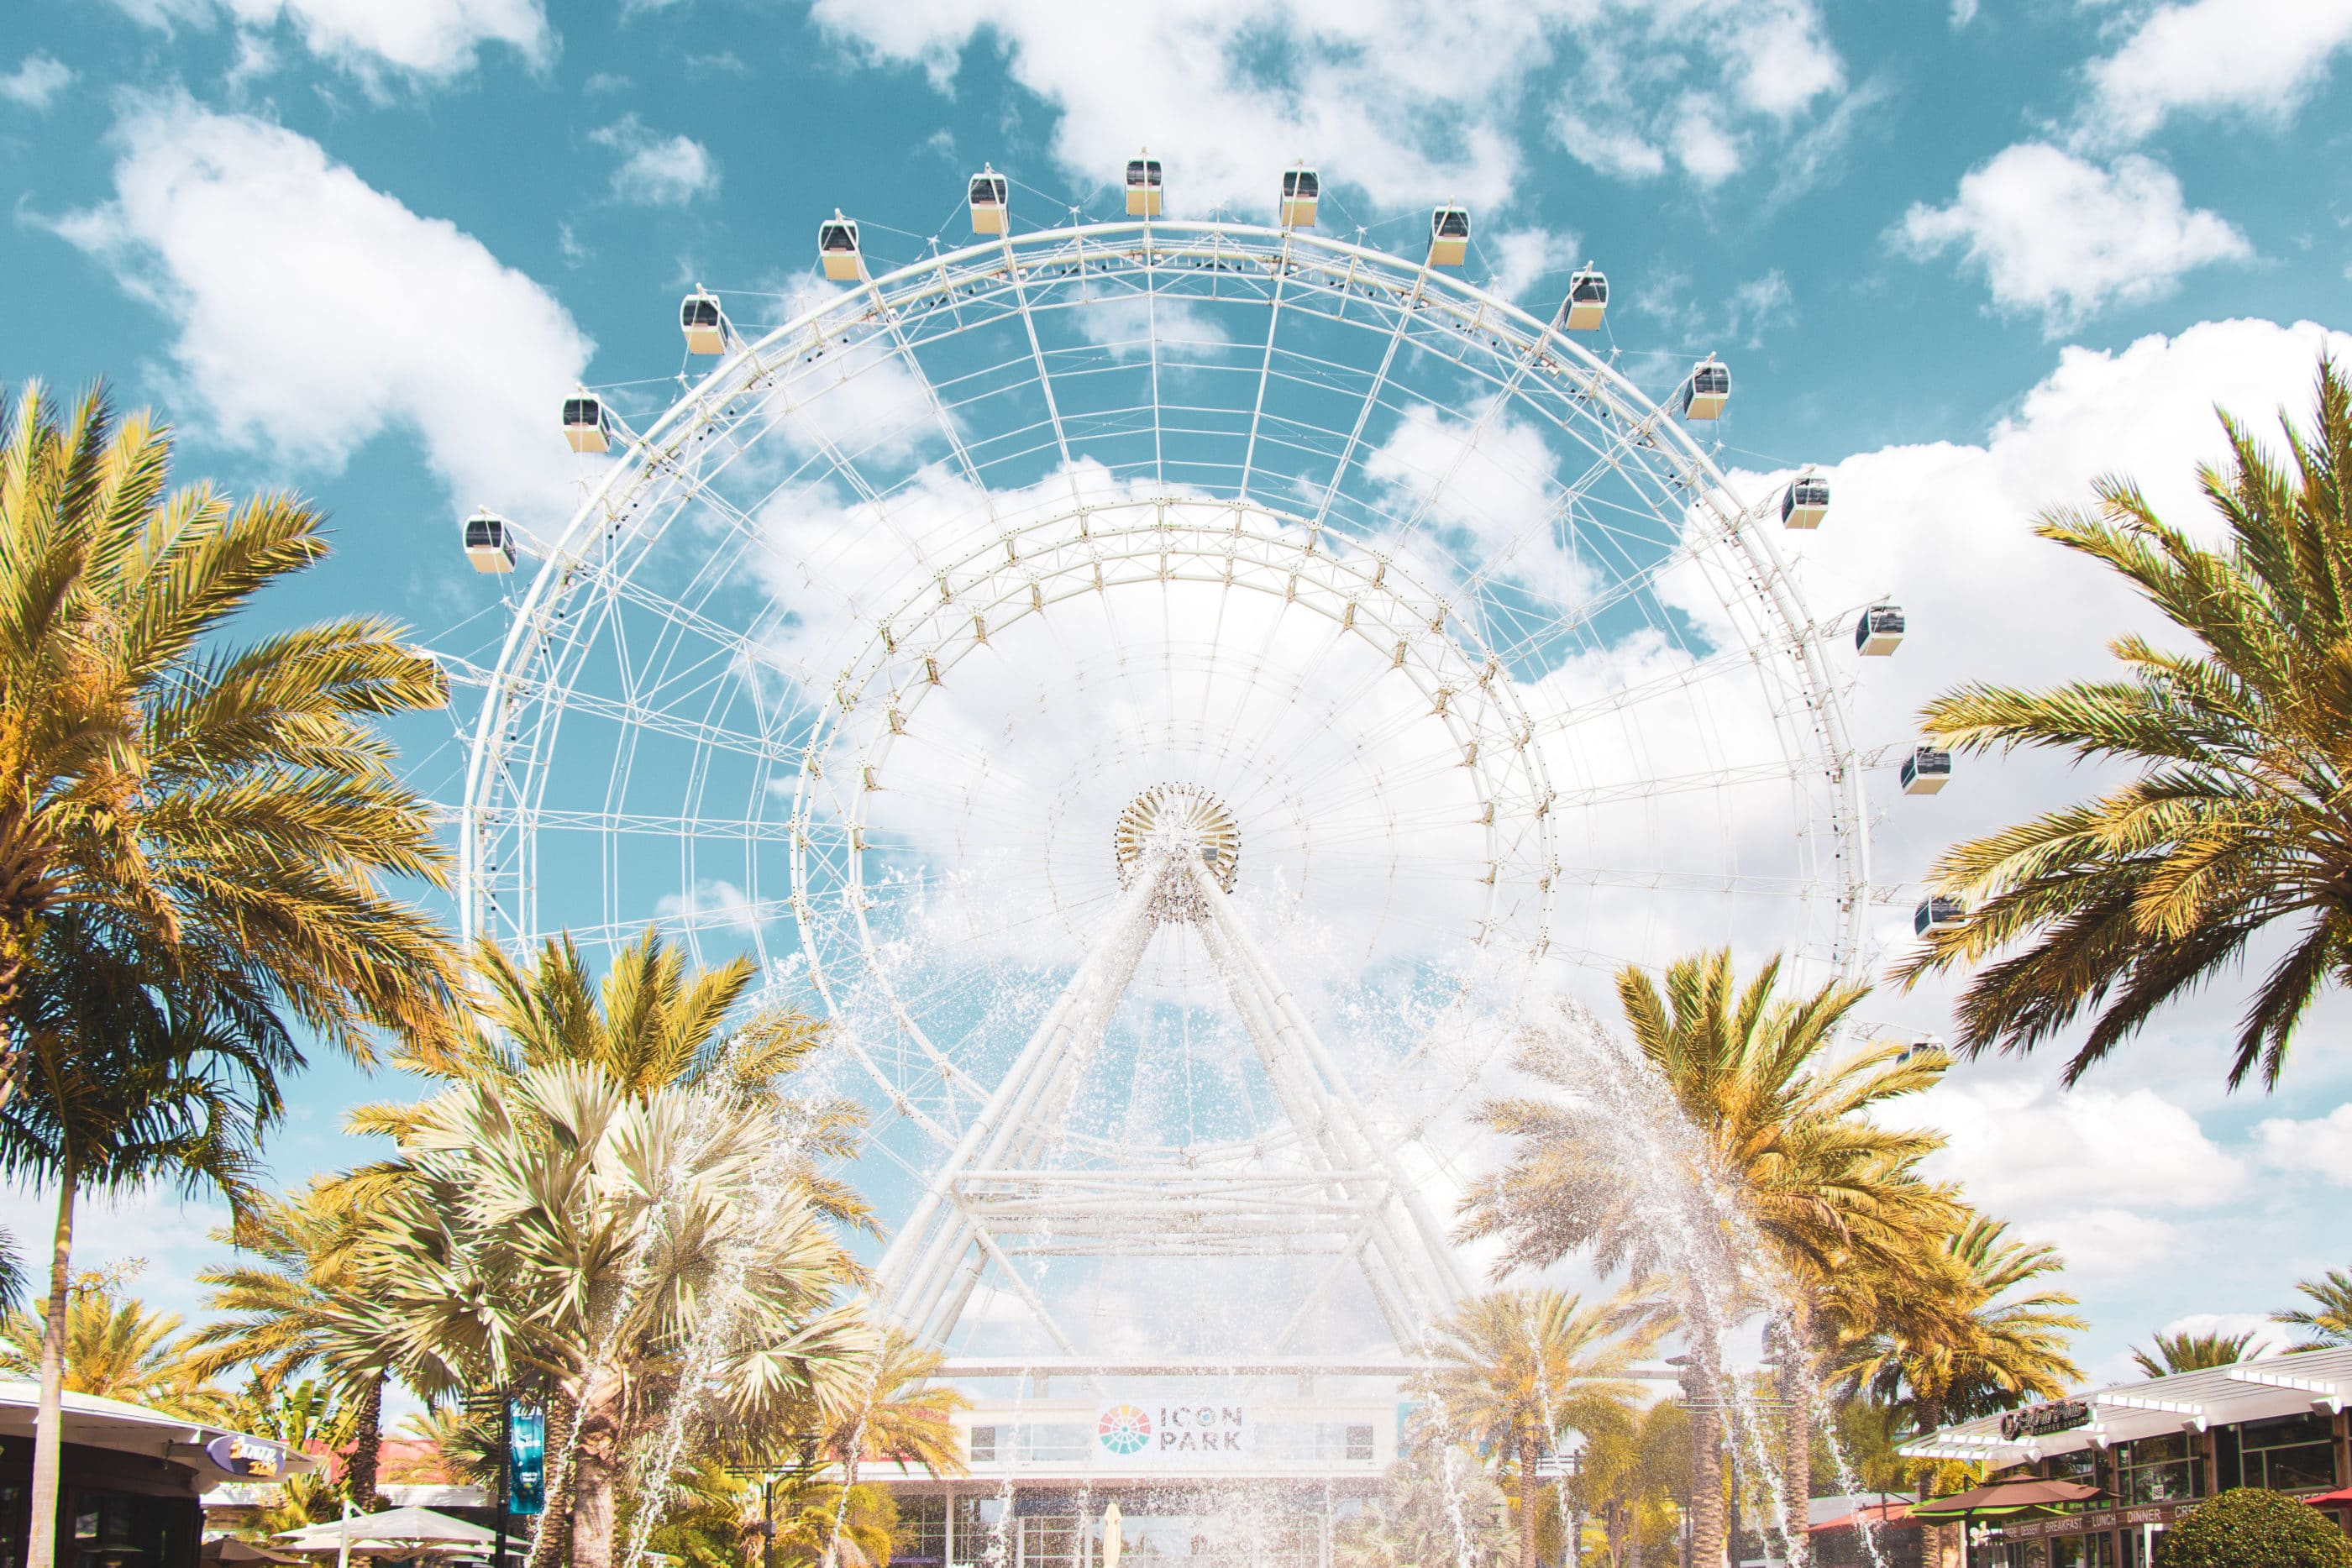 The Wheel at ICON Orlando spins against a blue sky with patches of clouds, one of the best things to do in Orlando with kids.